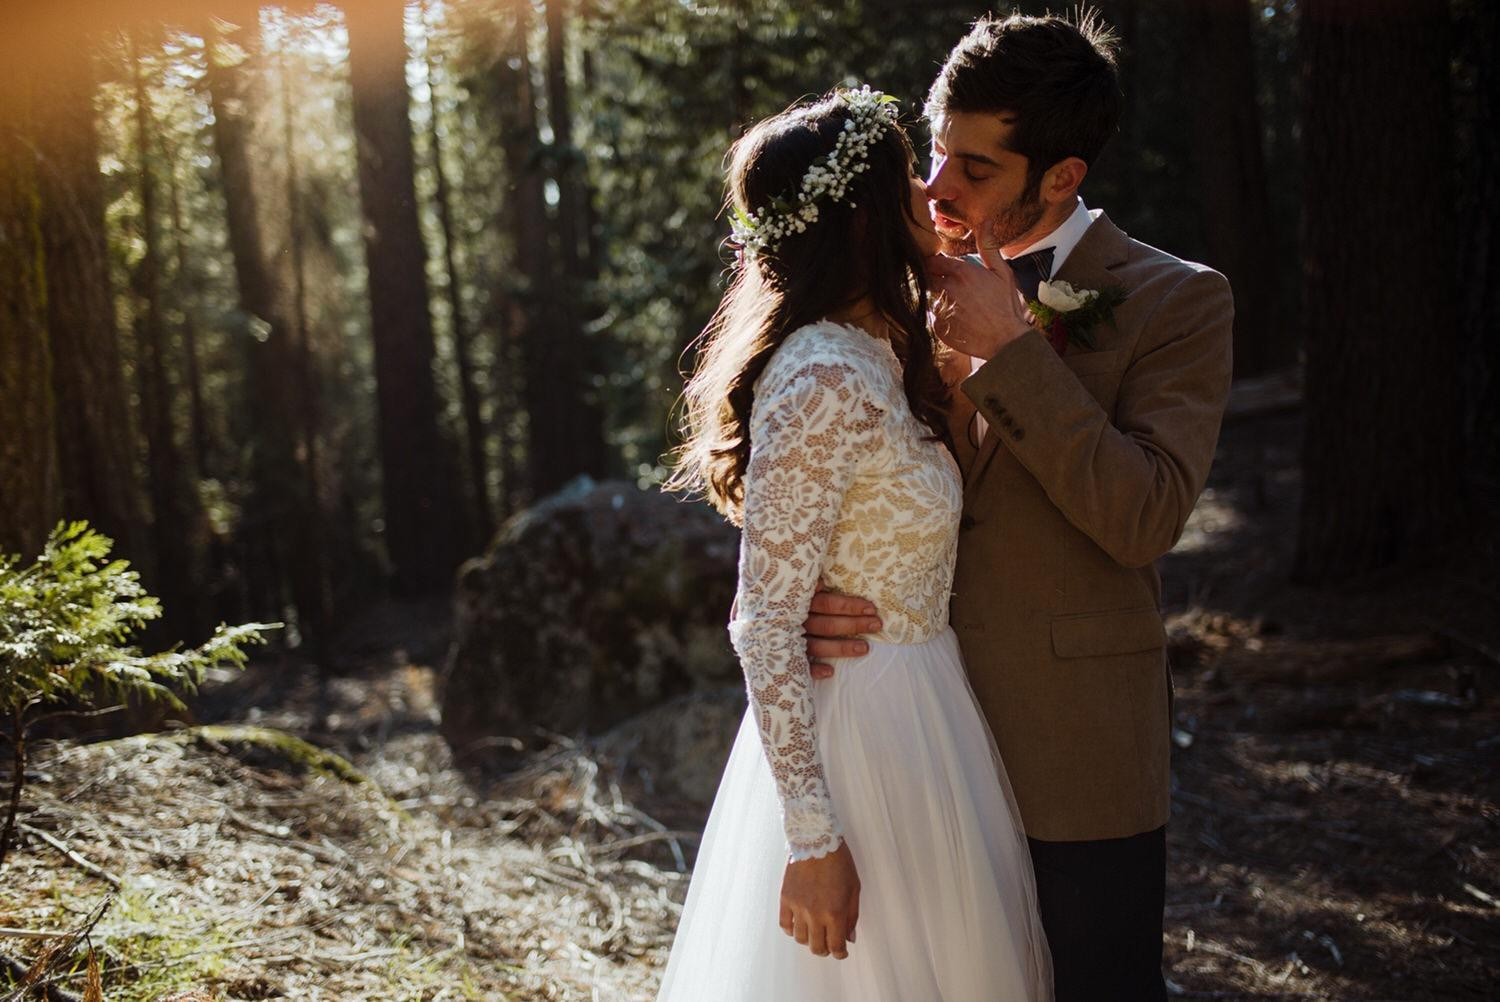 Bride and groom in each other arms in a forest